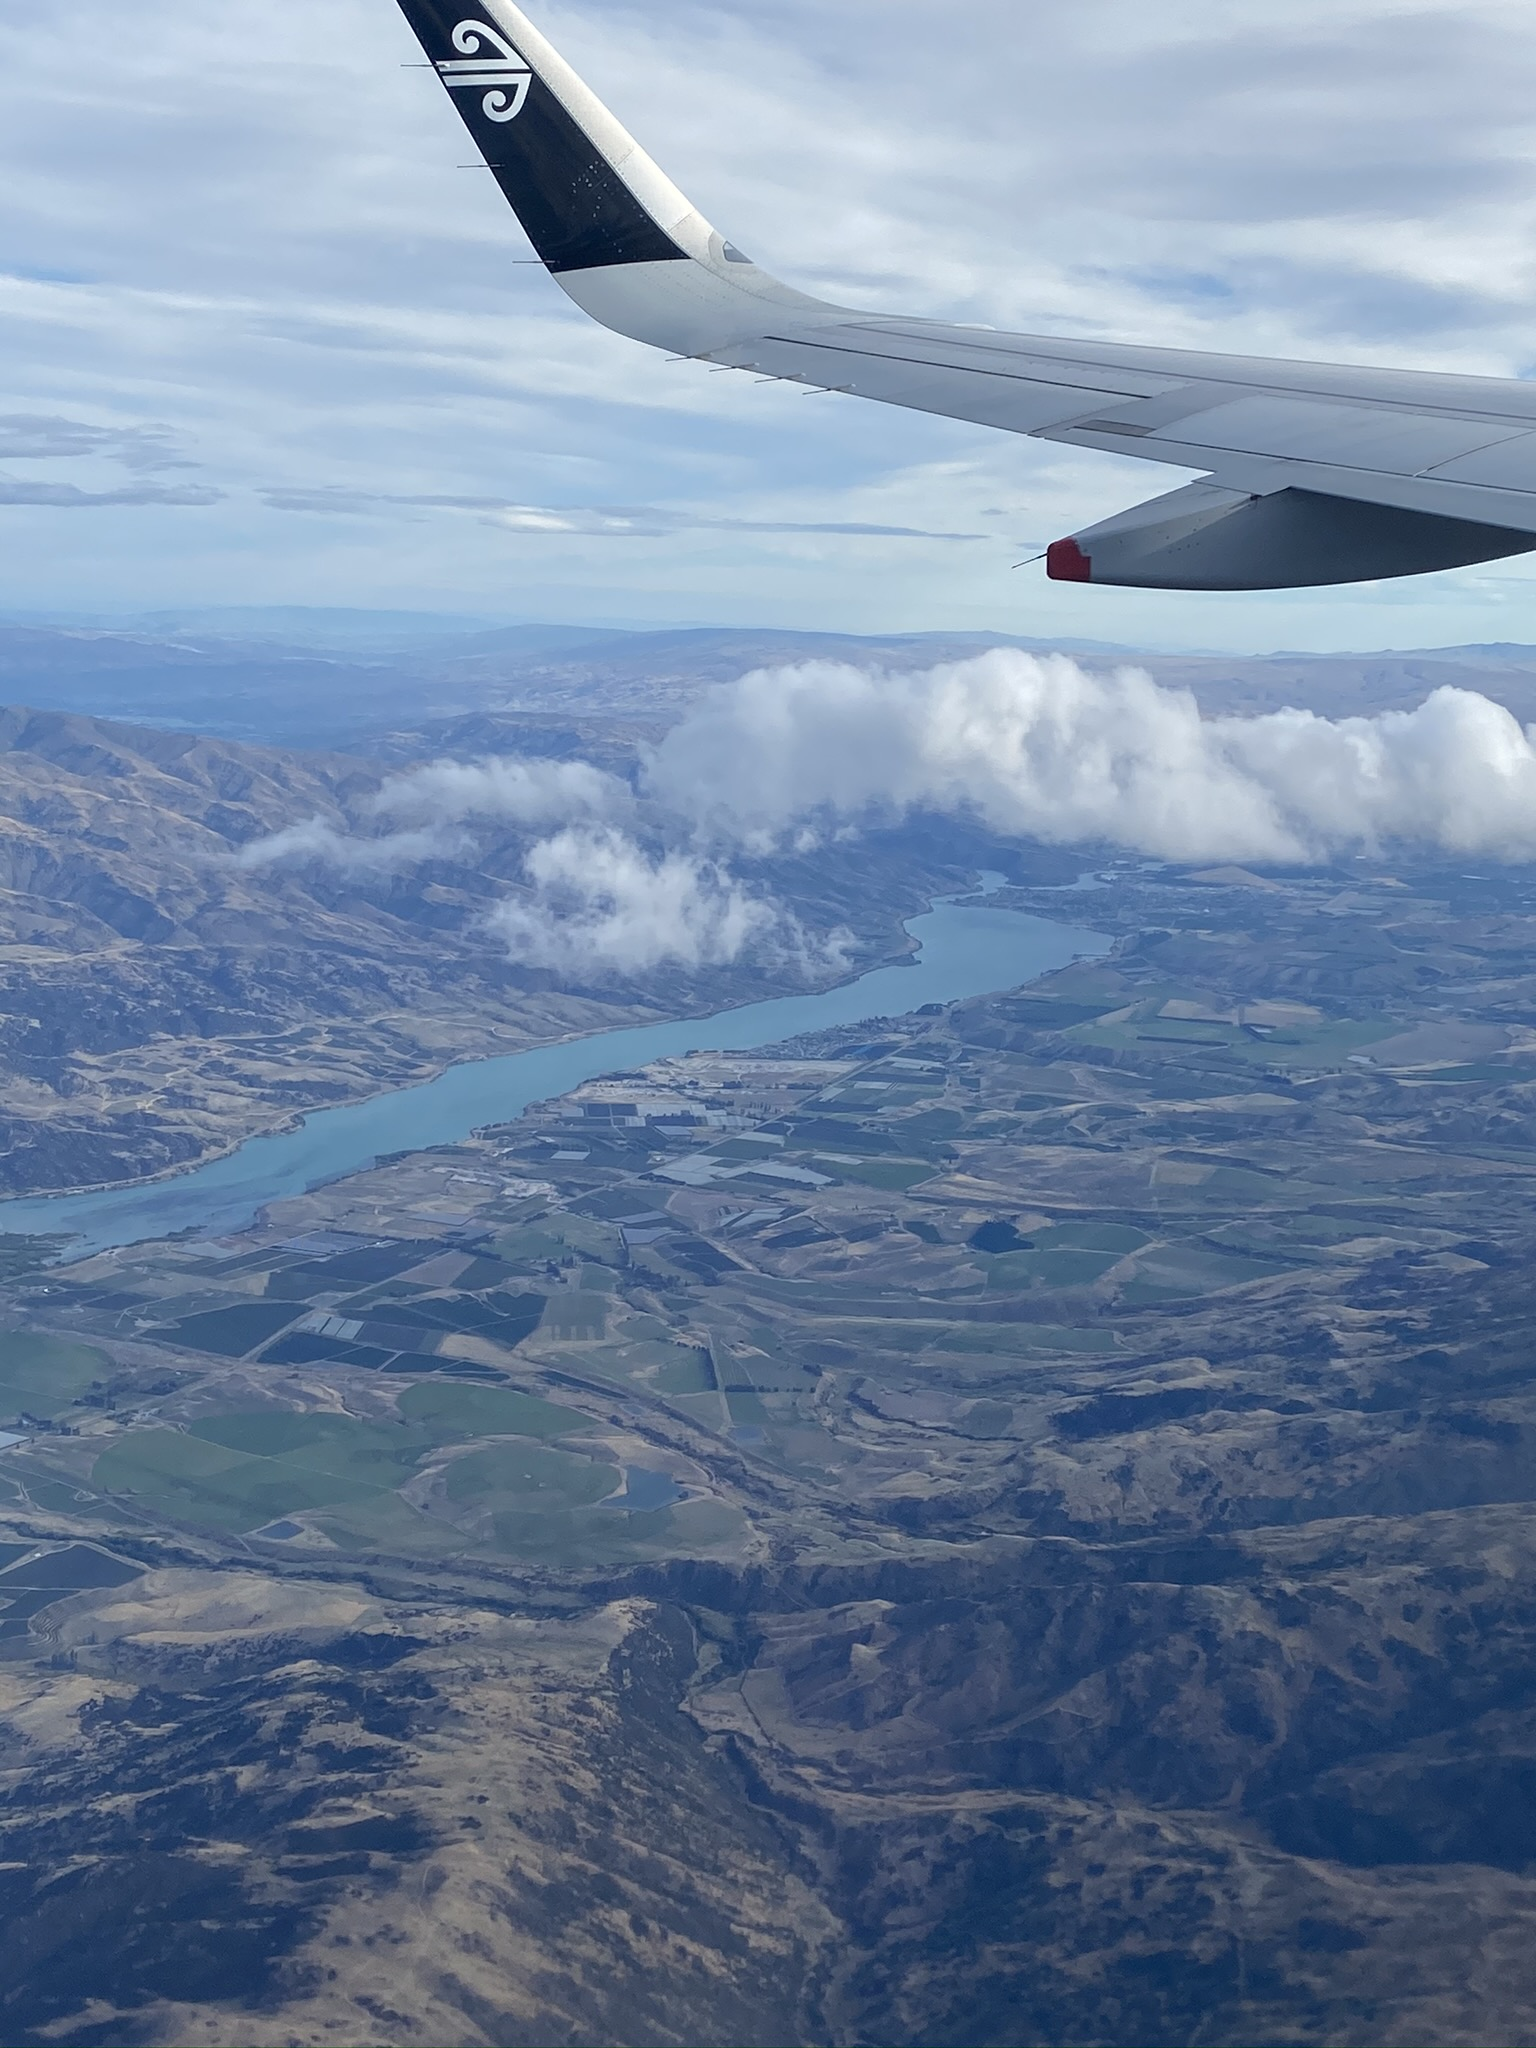 Landing in Queenstown